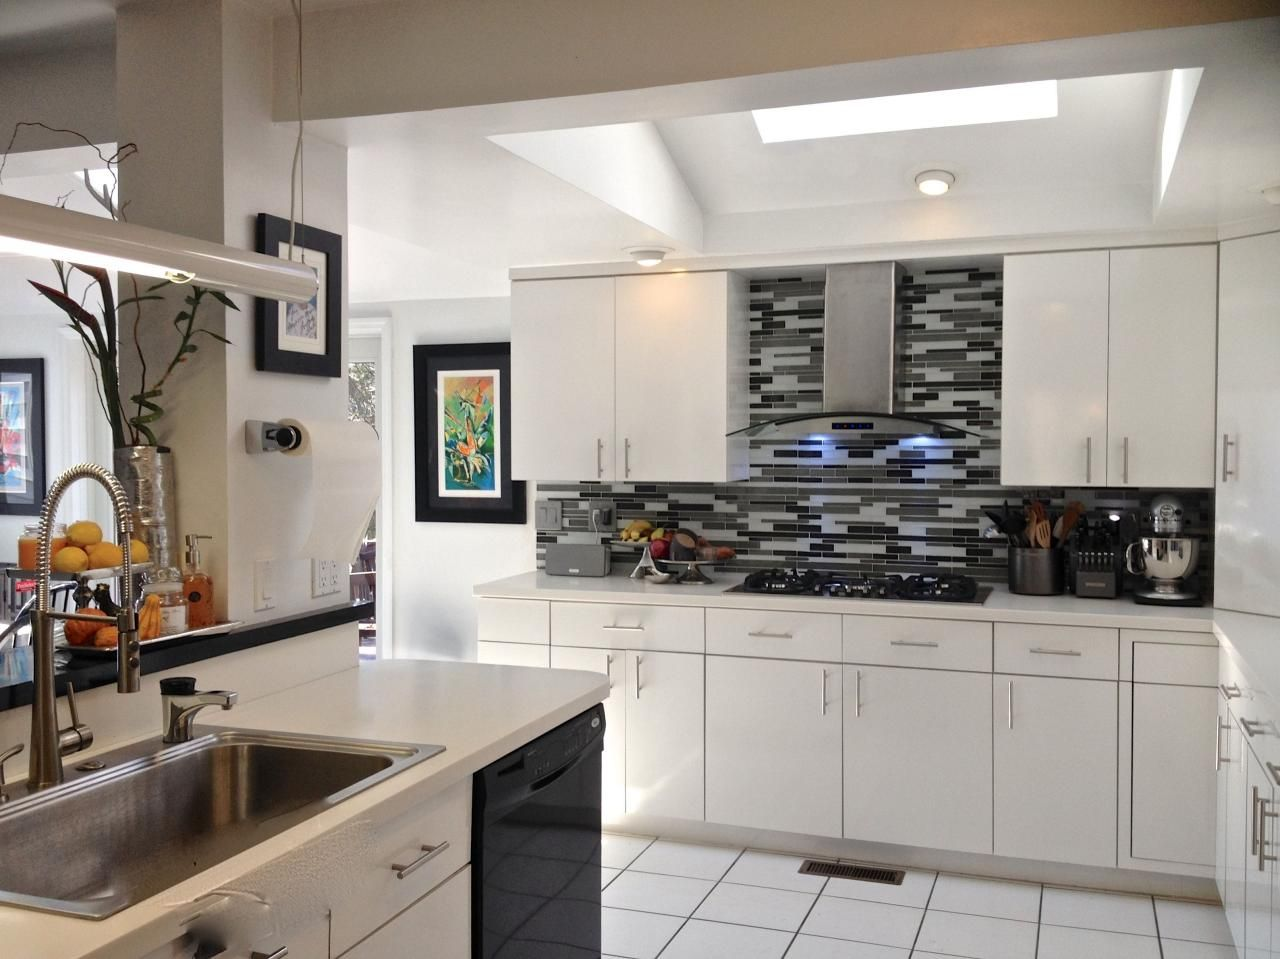 Fancy Black And White Tiles For Kitchen 49 For Your Home Design Online with Black  And